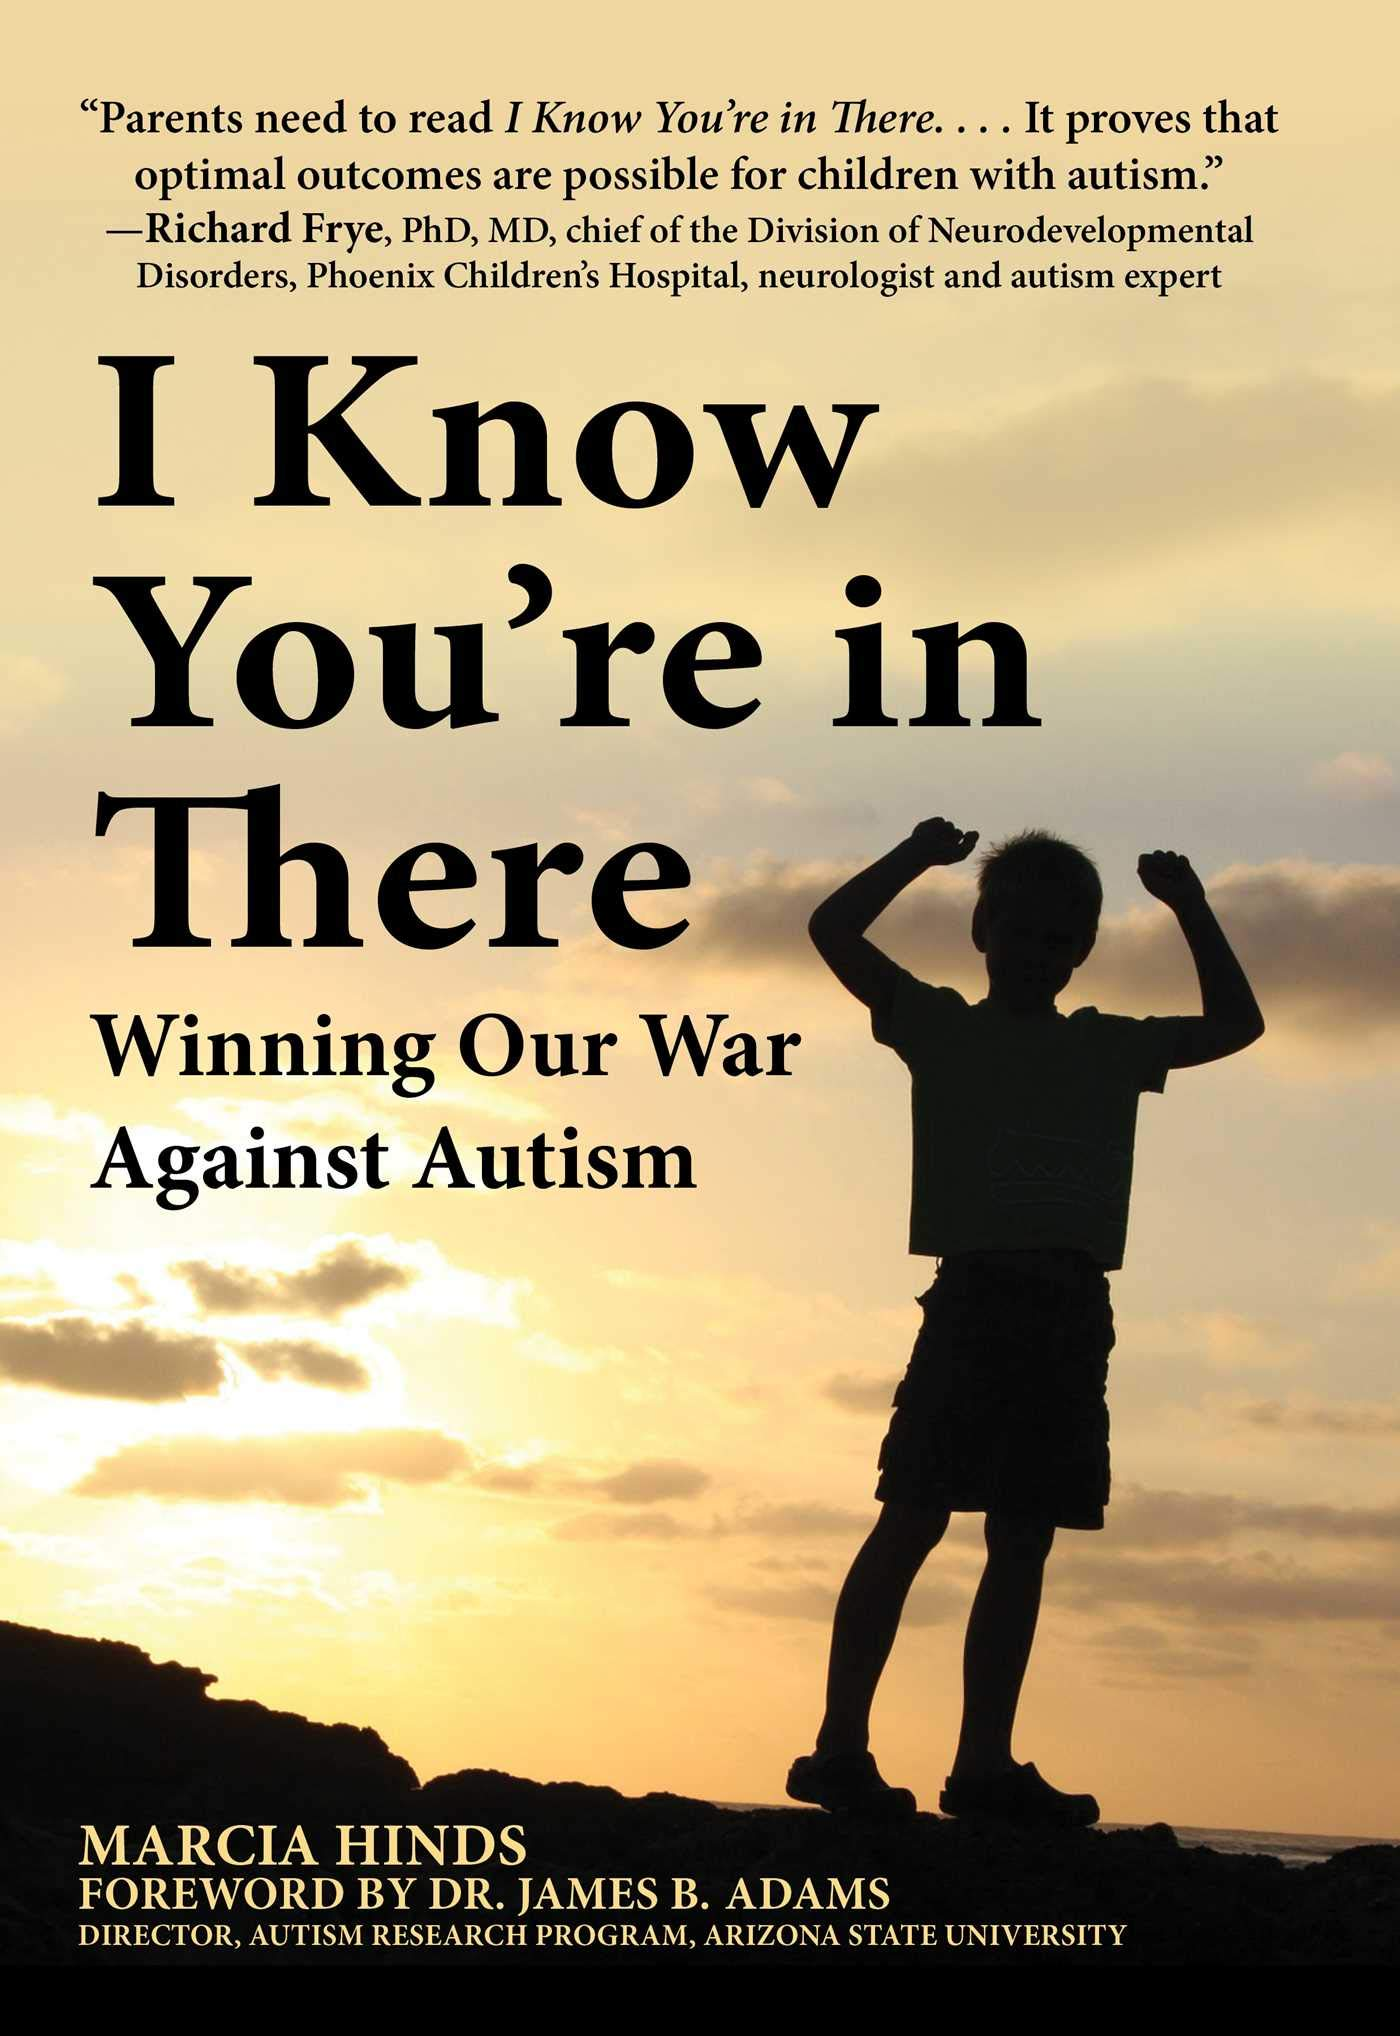 Image OfI Know You're In There: Winning Our War Against Autism